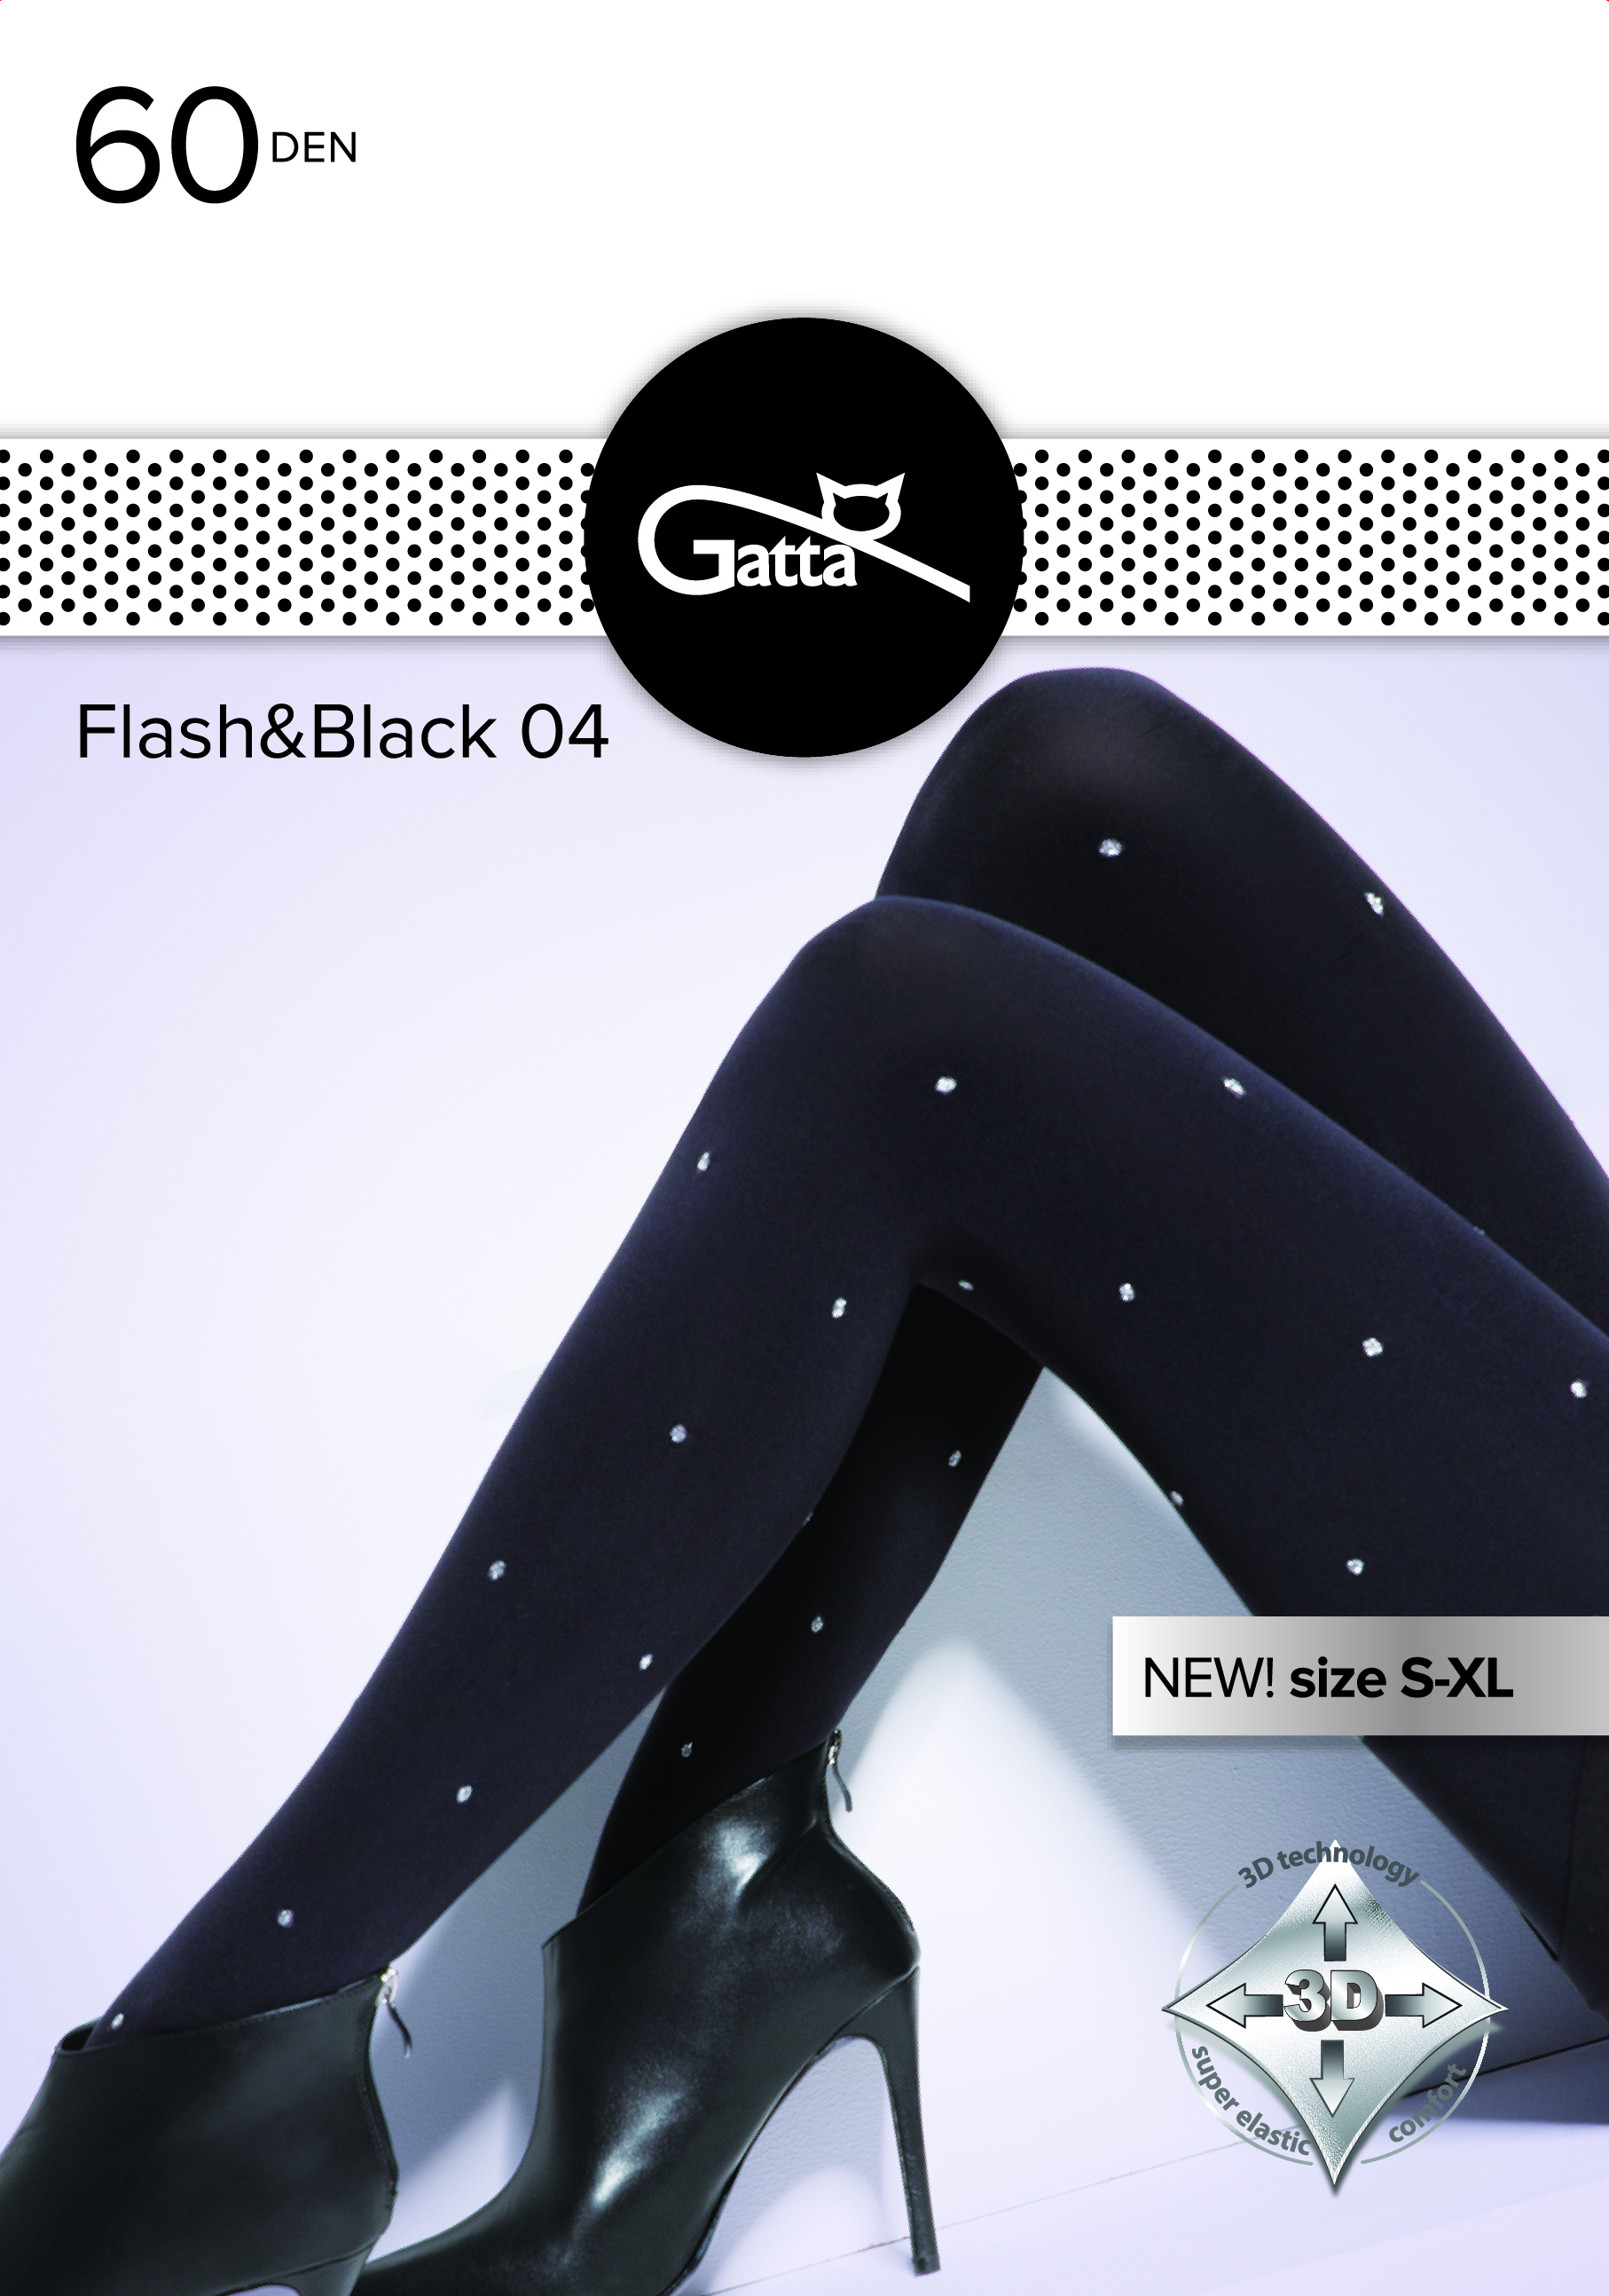 Flash black 04